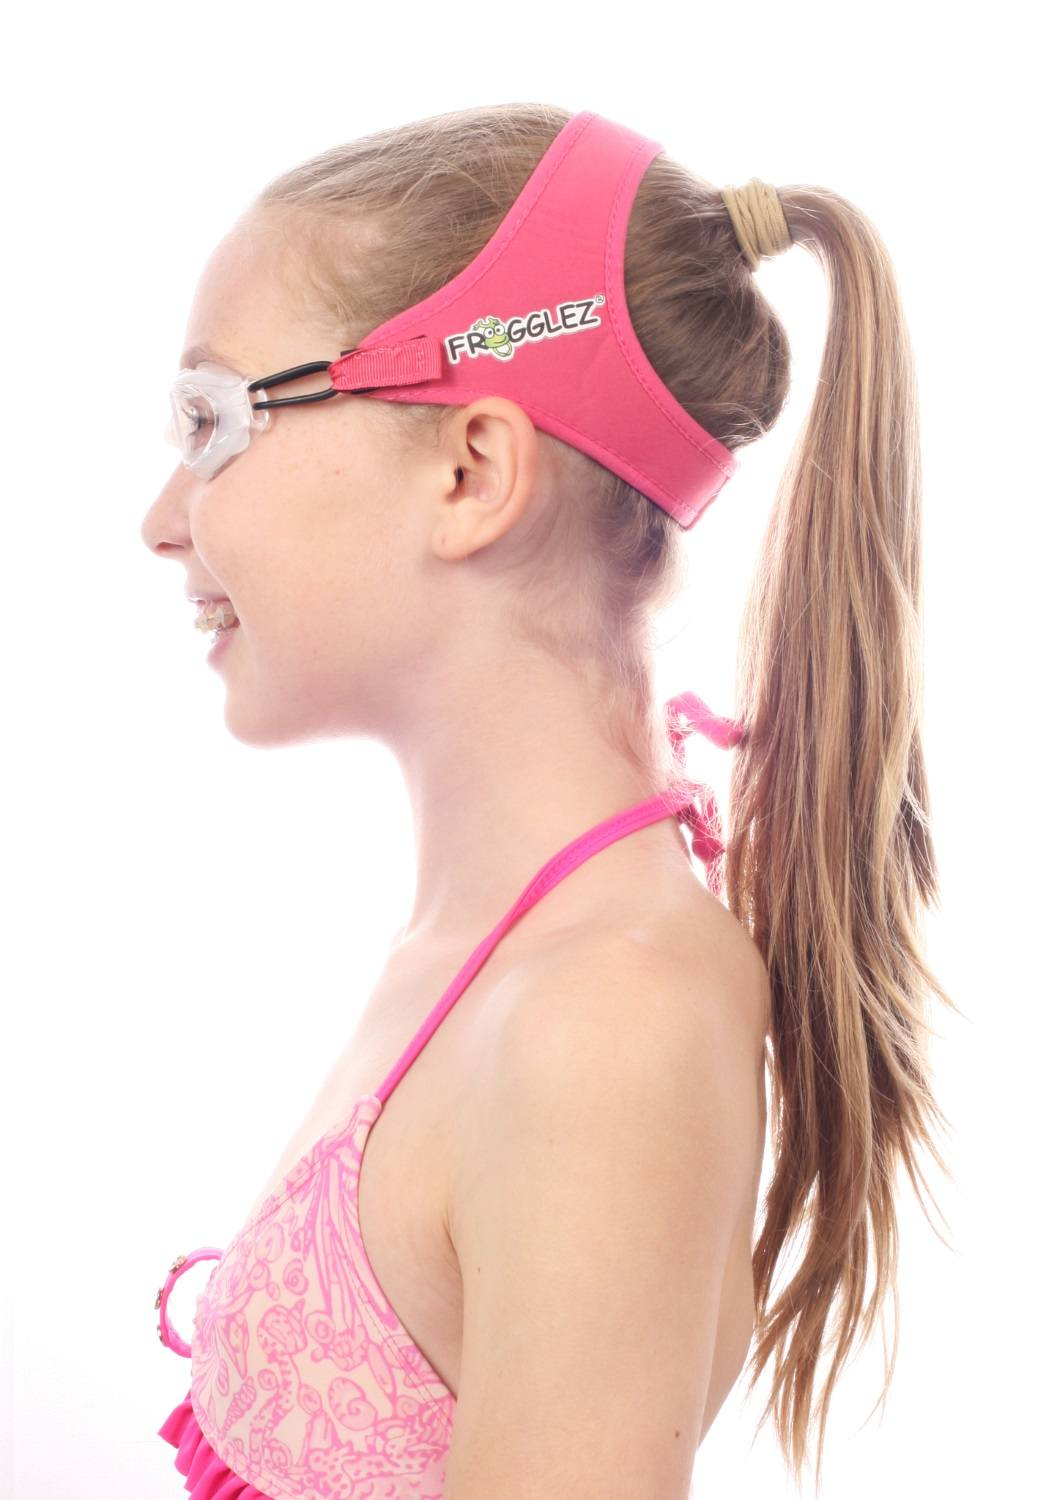 Frogglez Swimming Goggles for Kids by Frogglez